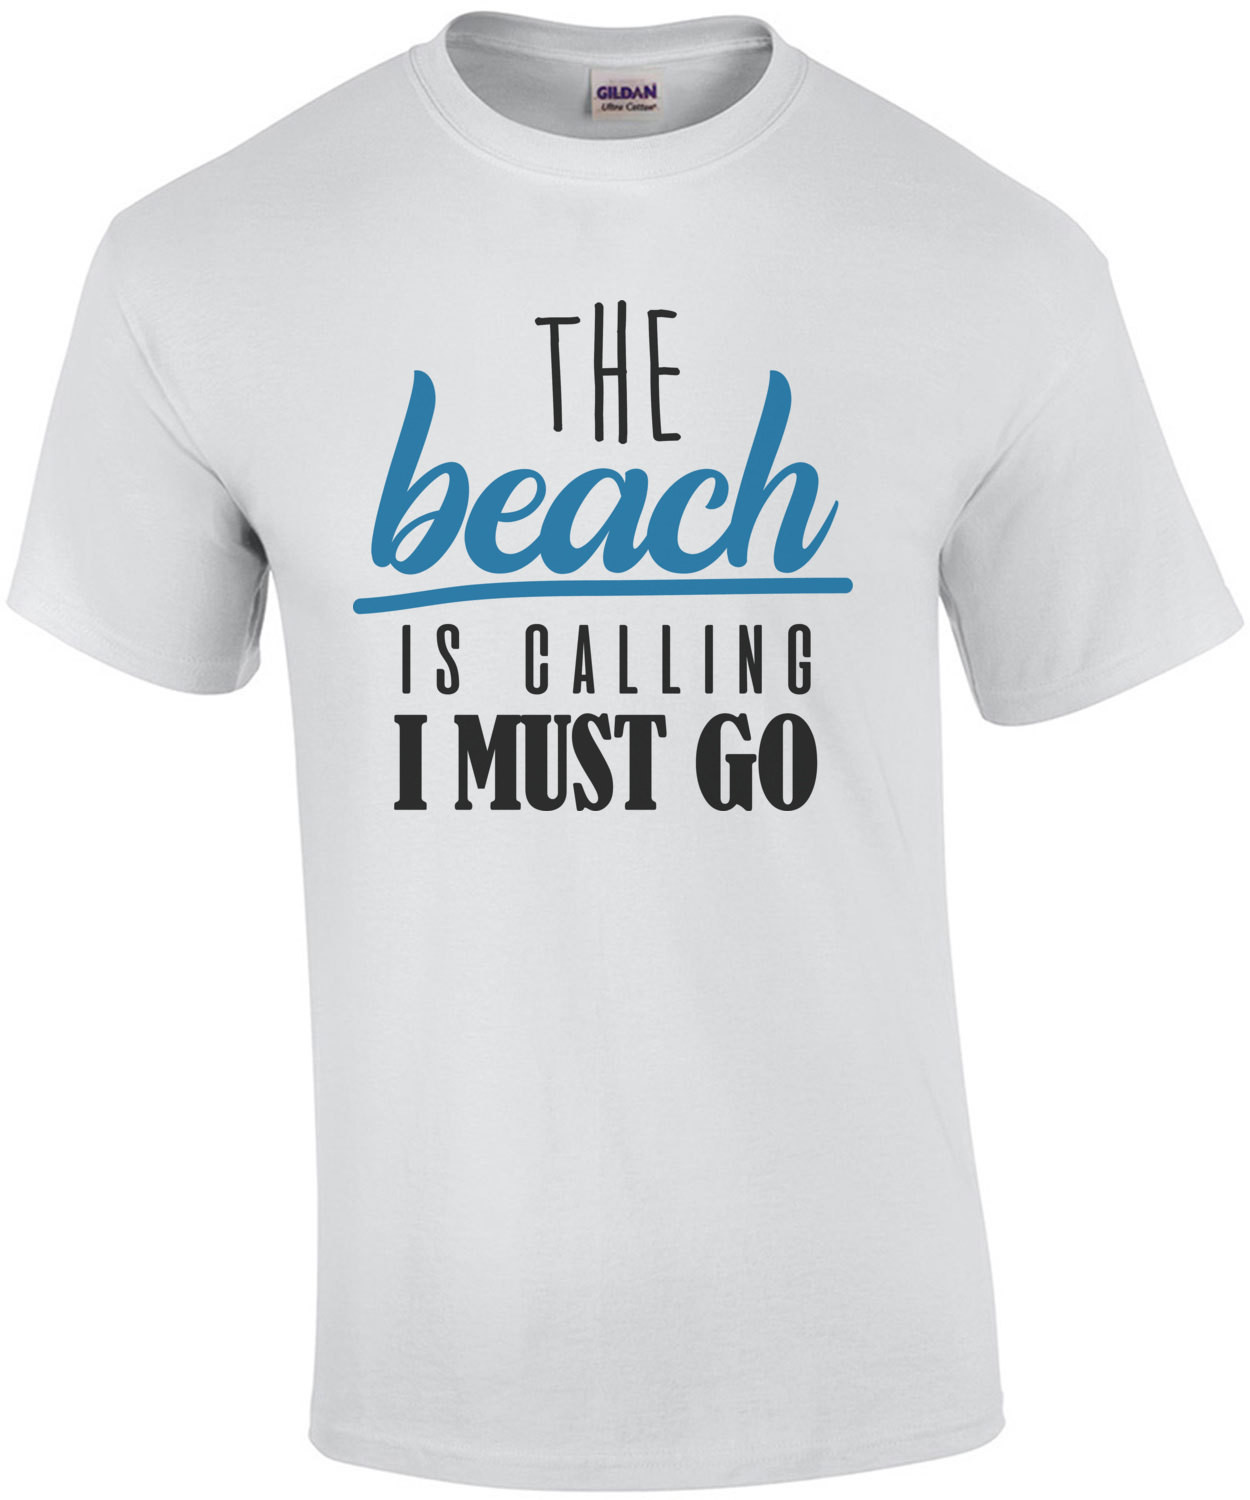 The beach is calling I must go - funny beach t-shirt